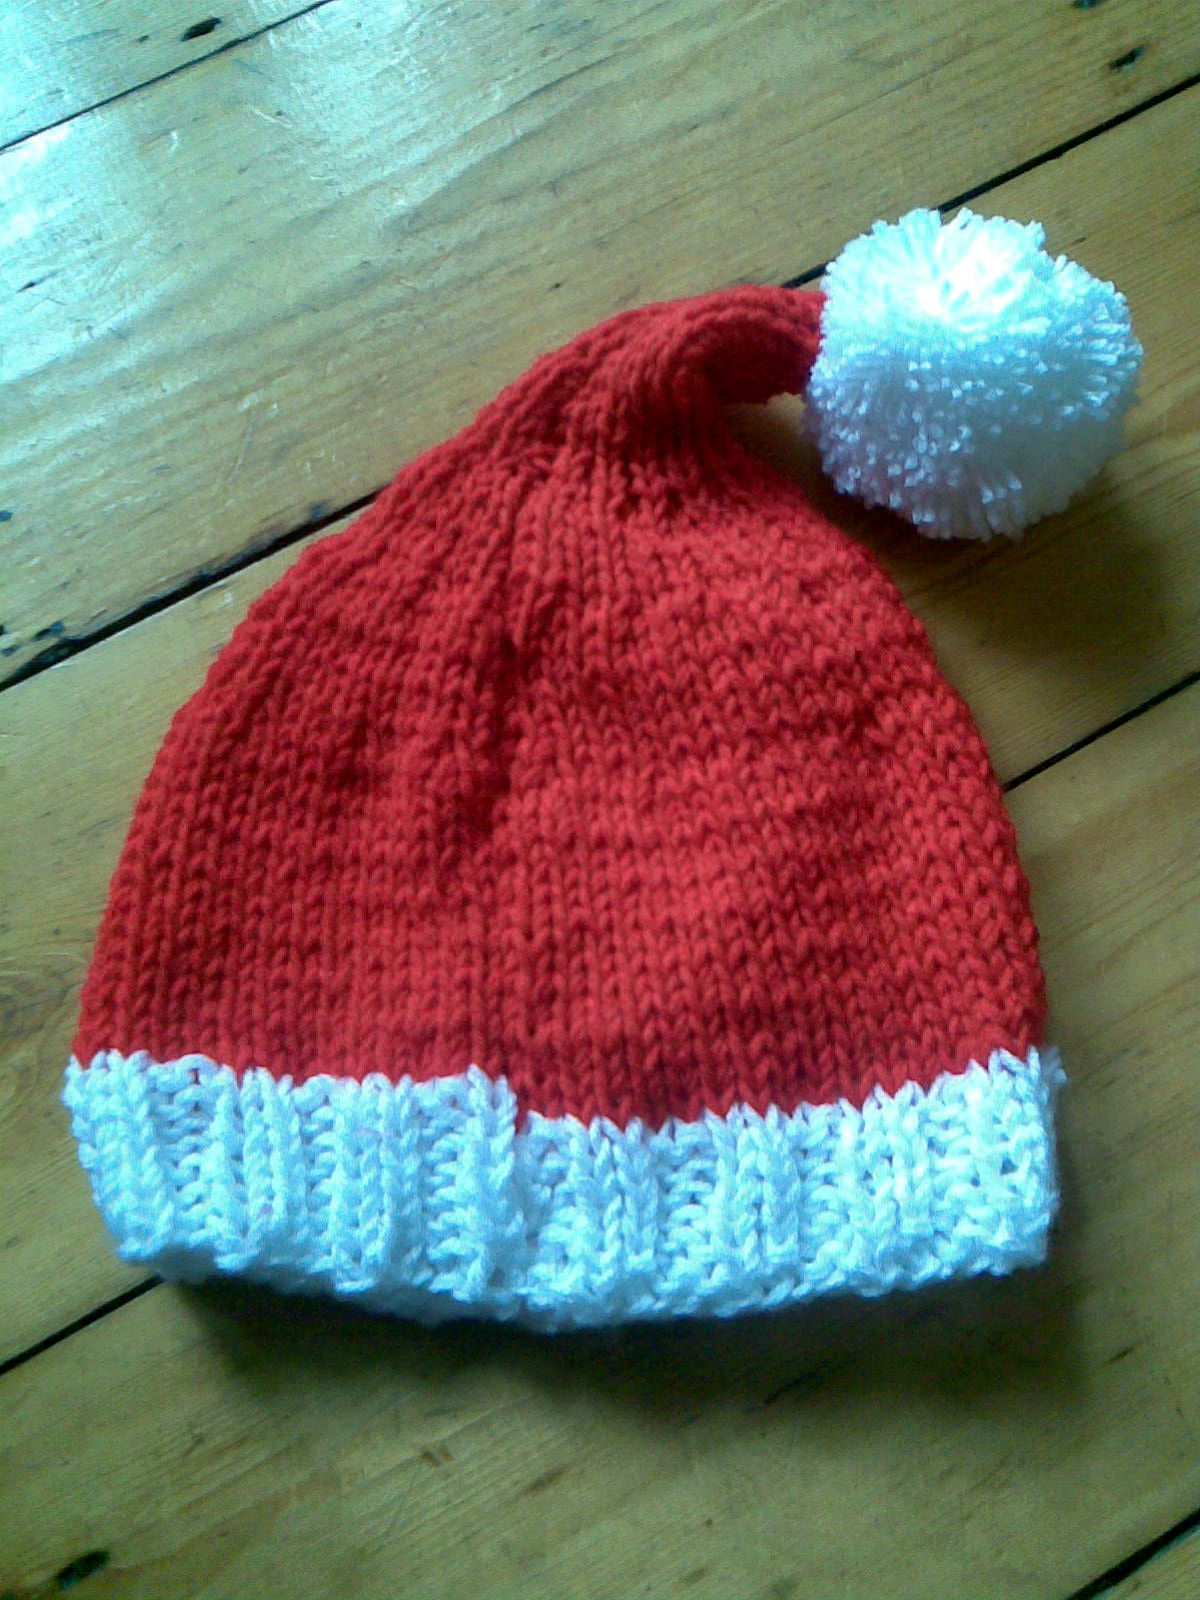 Knitting Pattern For Santa Hat : Musings of a knit-a-holic from Wales: Knitting Pattern ...